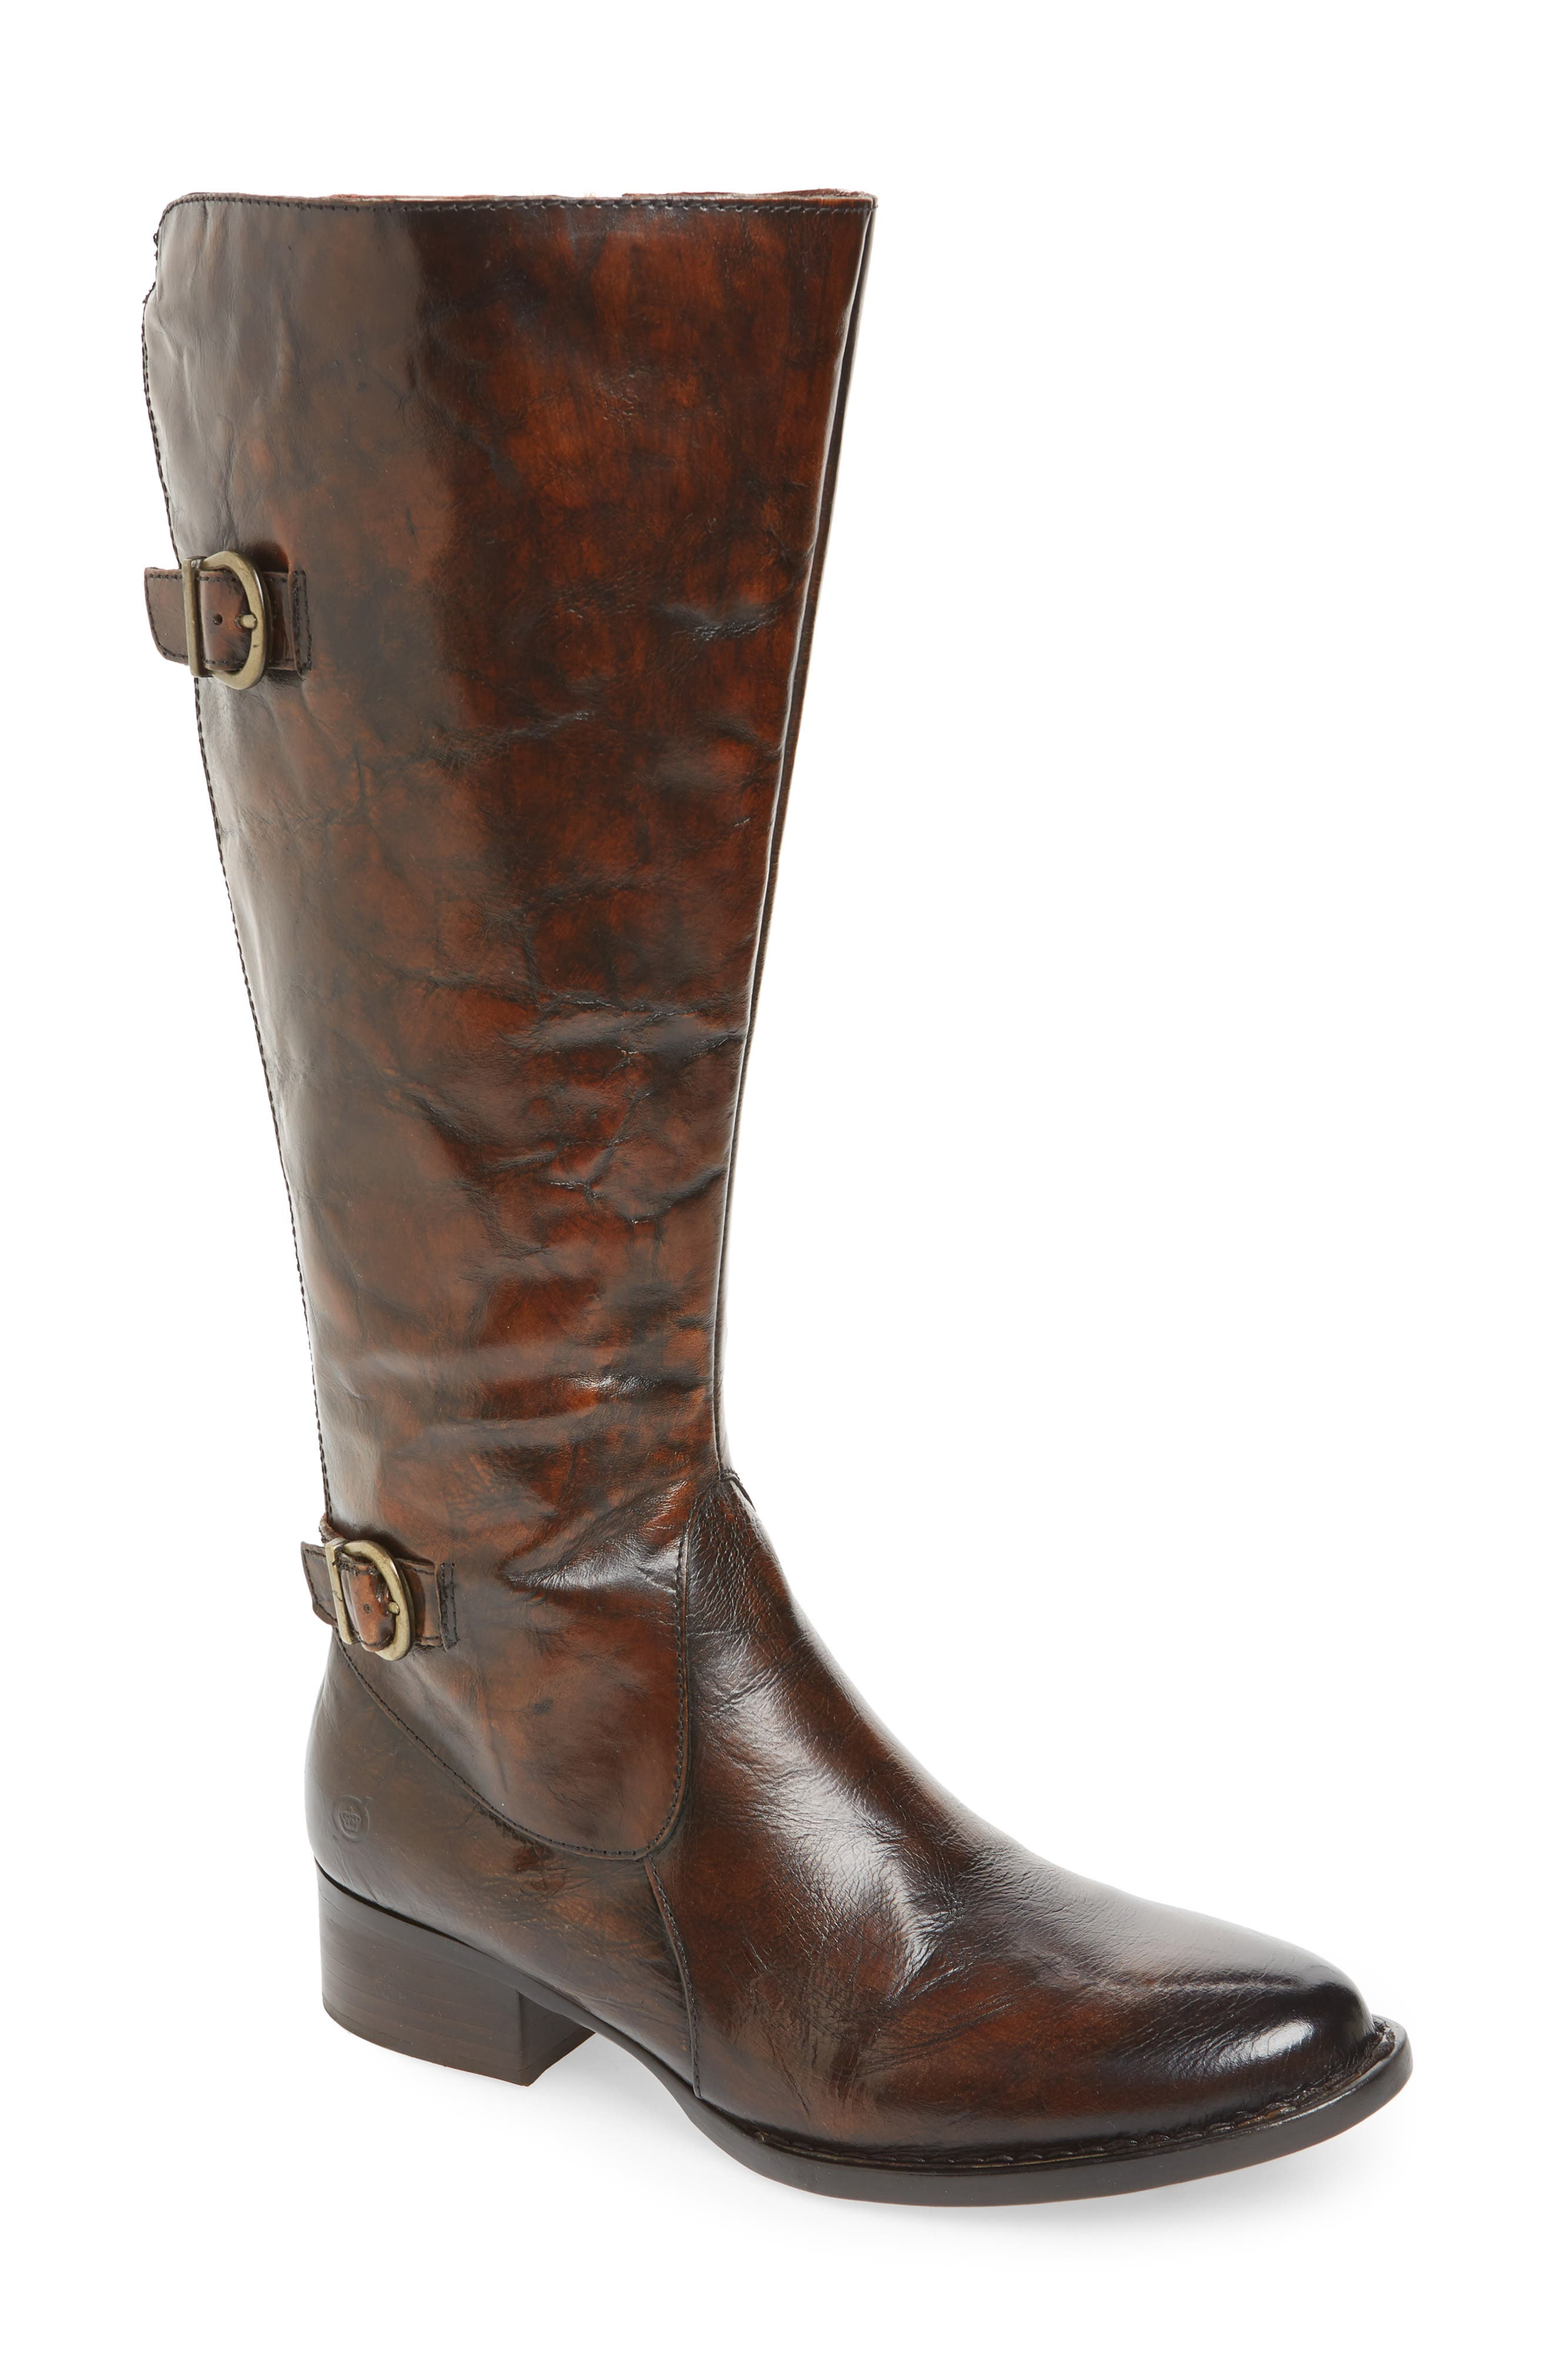 3693aa0b6ee born boots for women